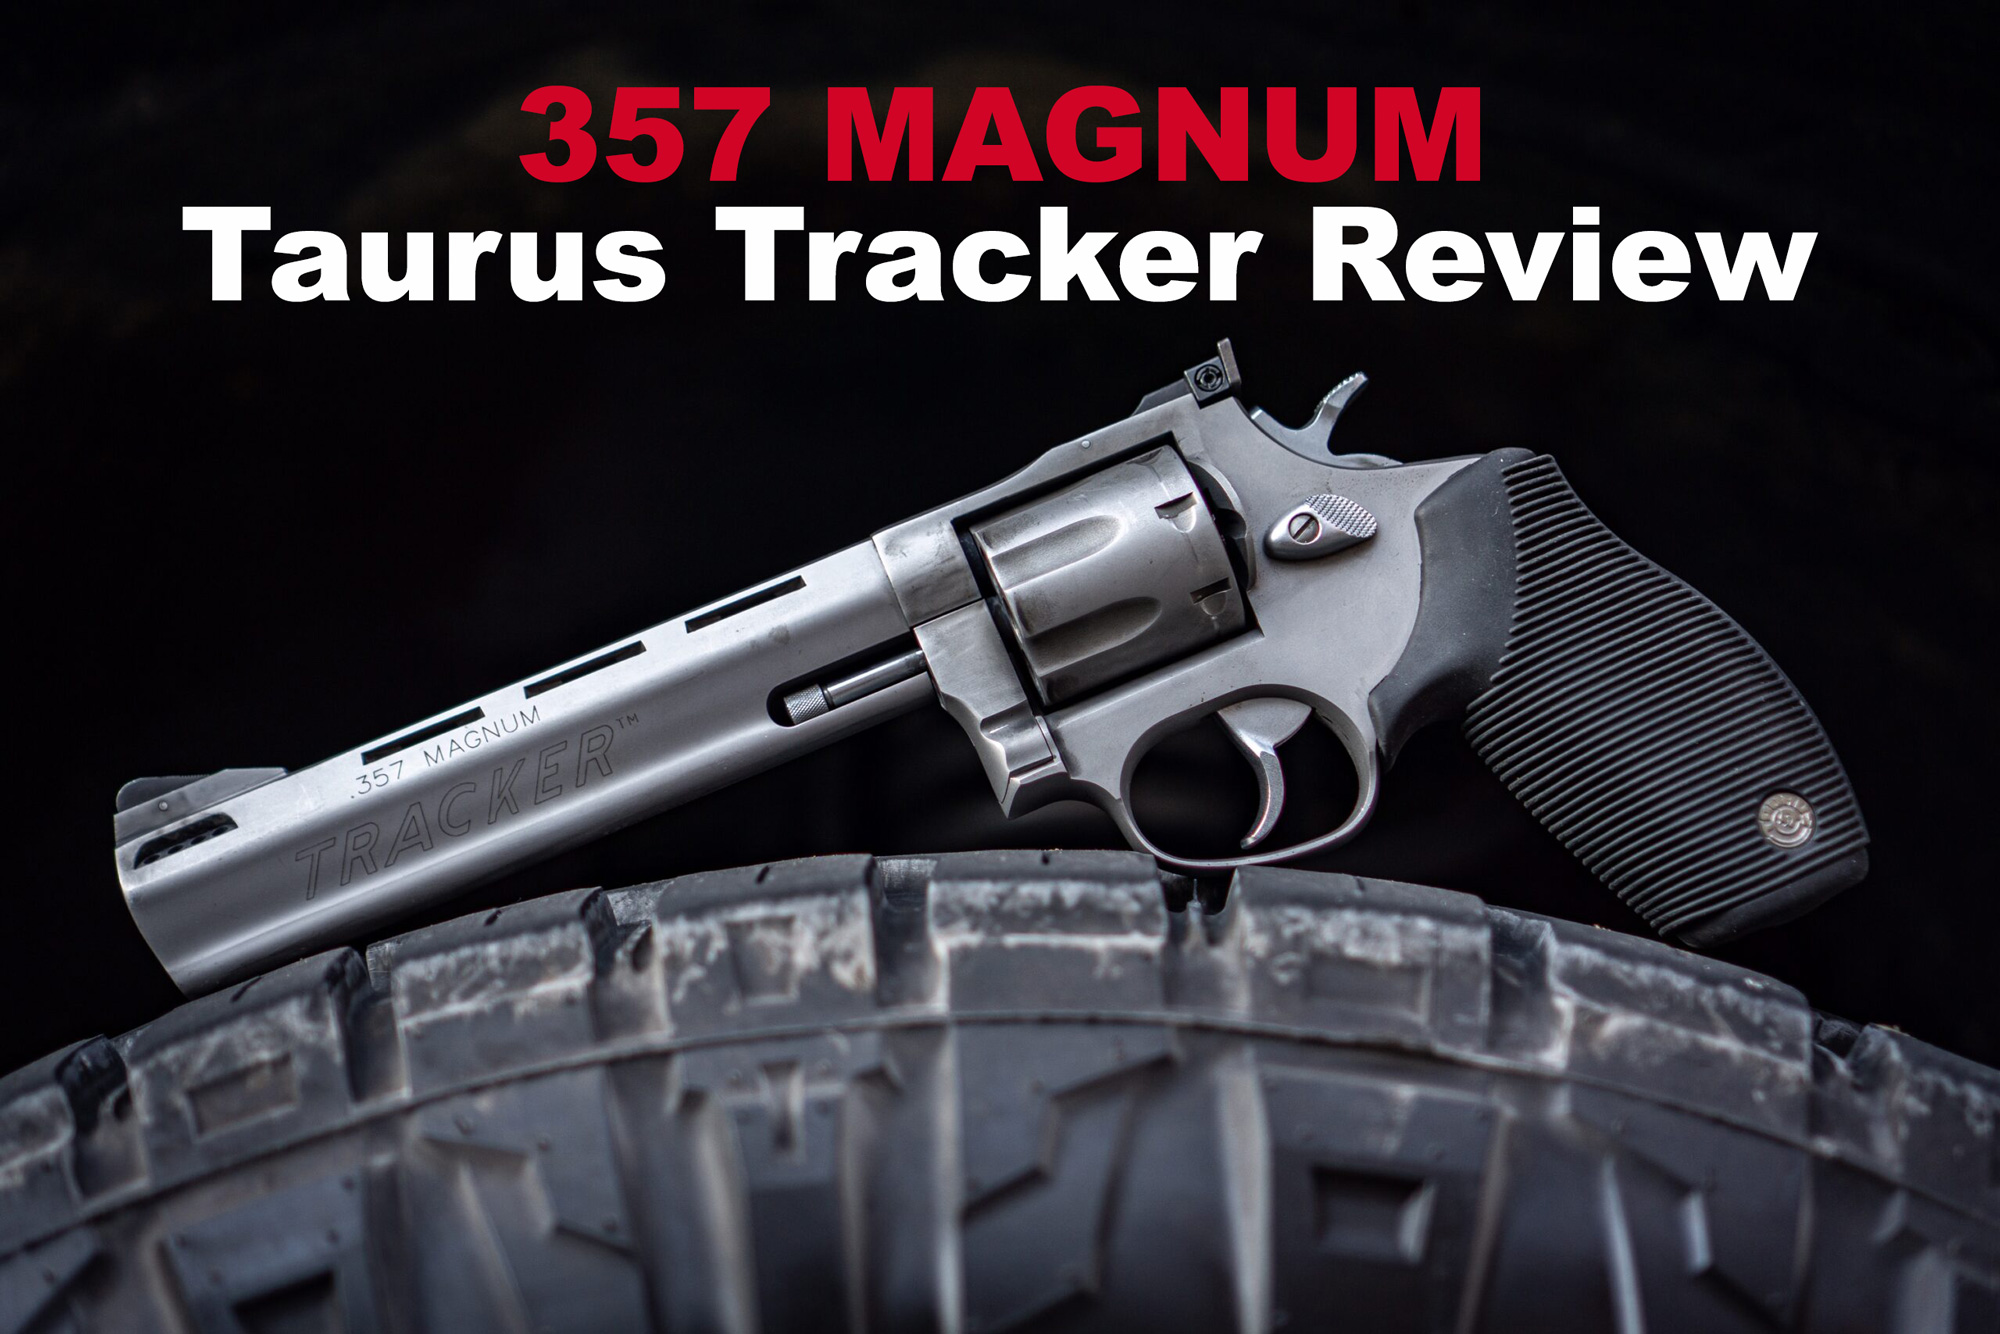 Revolver used for our Taurus Tracker Review